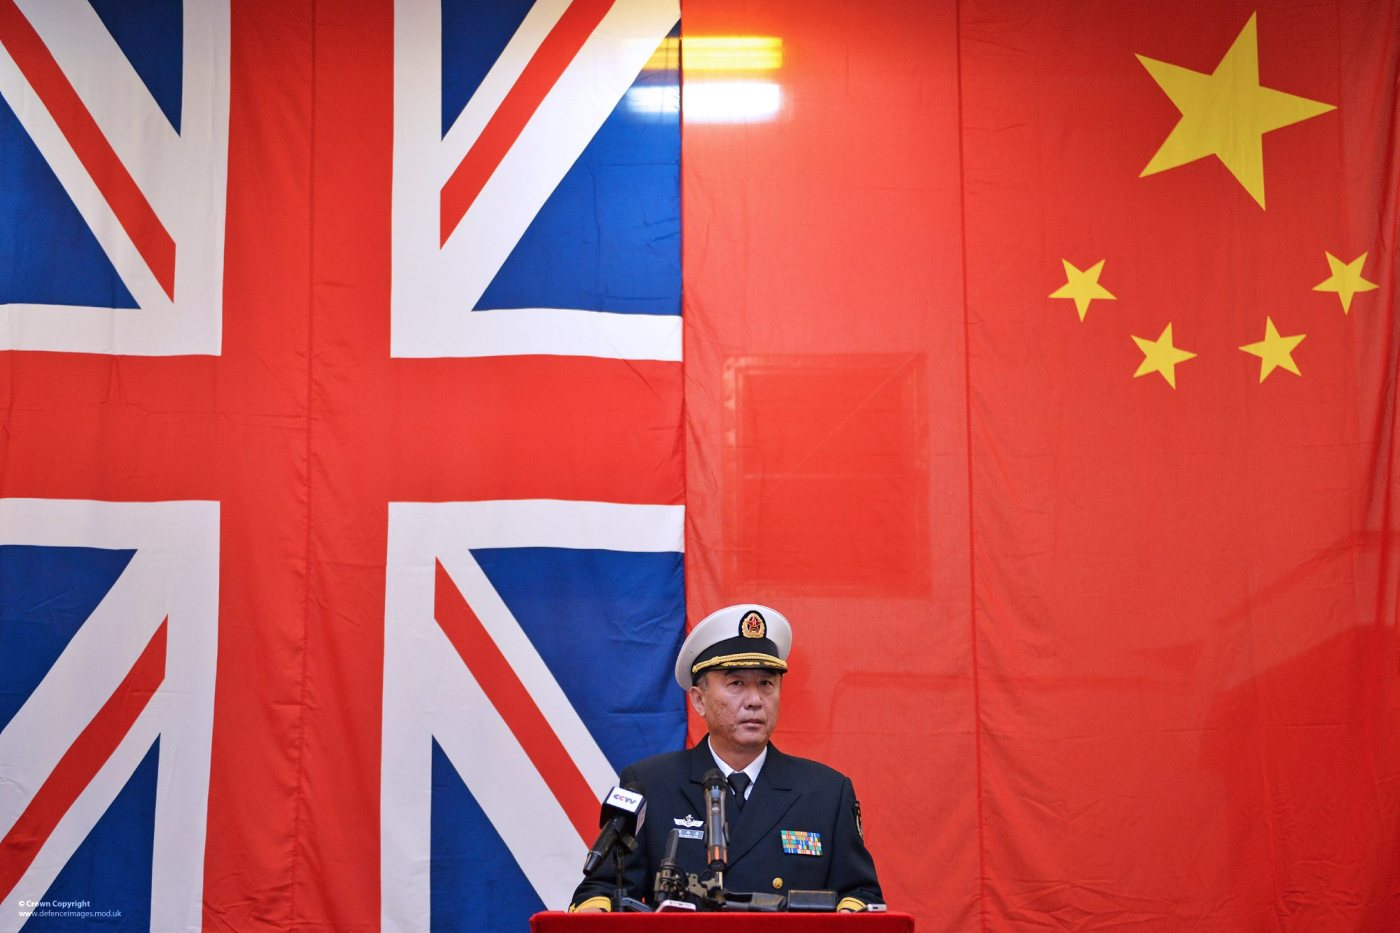 The Commanding Officer of the Chinese warship PLA Navy Ship Chang Bai Shan, Rear Admiral Zhang Chuansha addresses a press conference in Portsmouth.  On 12th January 2014  three Chinese warships were welcomed into Portsmouth on an official visit. The Chinese Ambassador Mr Xiaoming Liu and Defence Attaché Maj Gen Yao Min greeted the ships and visited the Landing Platform Ship PLA Navy Ship Chang Bai Shan.   The Royal Marines Band performed to members of the Chinese community from all around the UK,  before the ships was open for tours. ------------------------------------------------------- © Crown Copyright 2014 Photographer: LA(PHOT) Keith Morgan Image 45158369.jpg from www.defenceimages.mod.uk    Use of this image is subject to the terms and conditions of the MoD News Licence at www.defenceimagery.mod.uk/fotoweb/20121001_Crown_copyright_MOD_News_Licence.pdf   For latest news visit www.gov.uk/government/organisations/ministry-of-defence Follow us:  www.facebook.com/defenceimages www.twitter.com/defenceimages